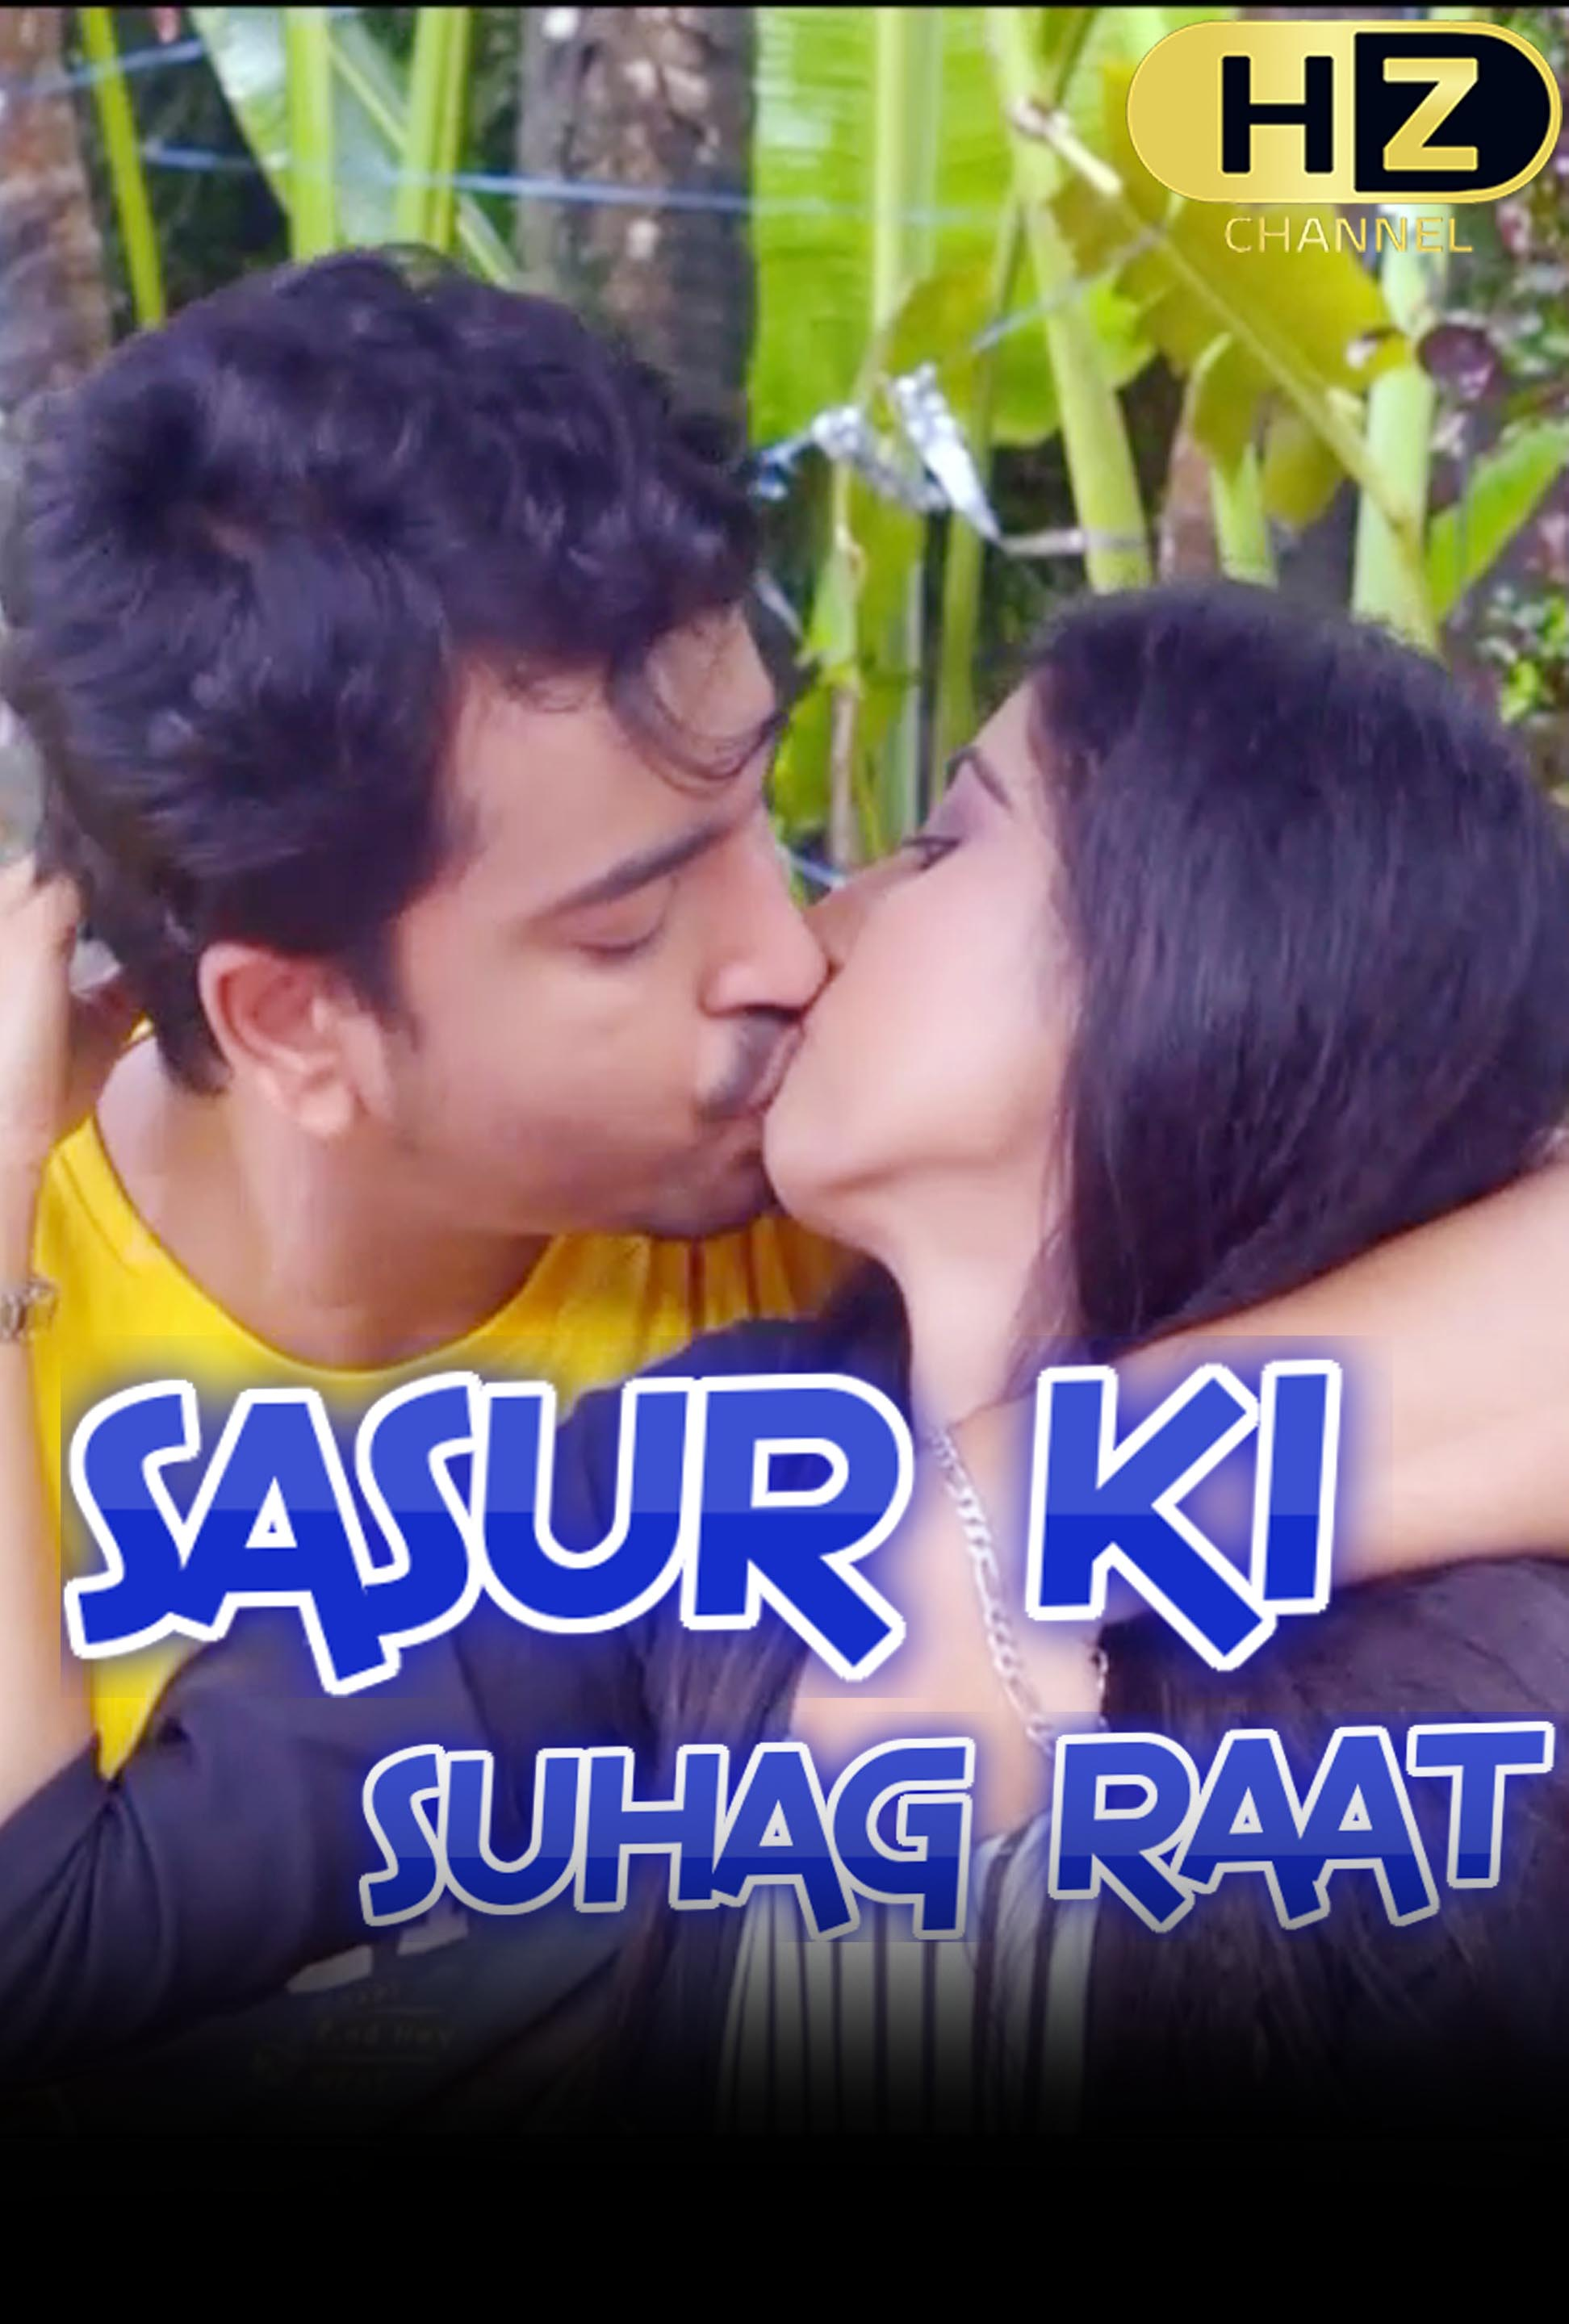 18+ Sasur Ki Suhagrat 2020 S01E03 HootzyChannel Hindi Web Series 720p HDRip 200MB Watch Online